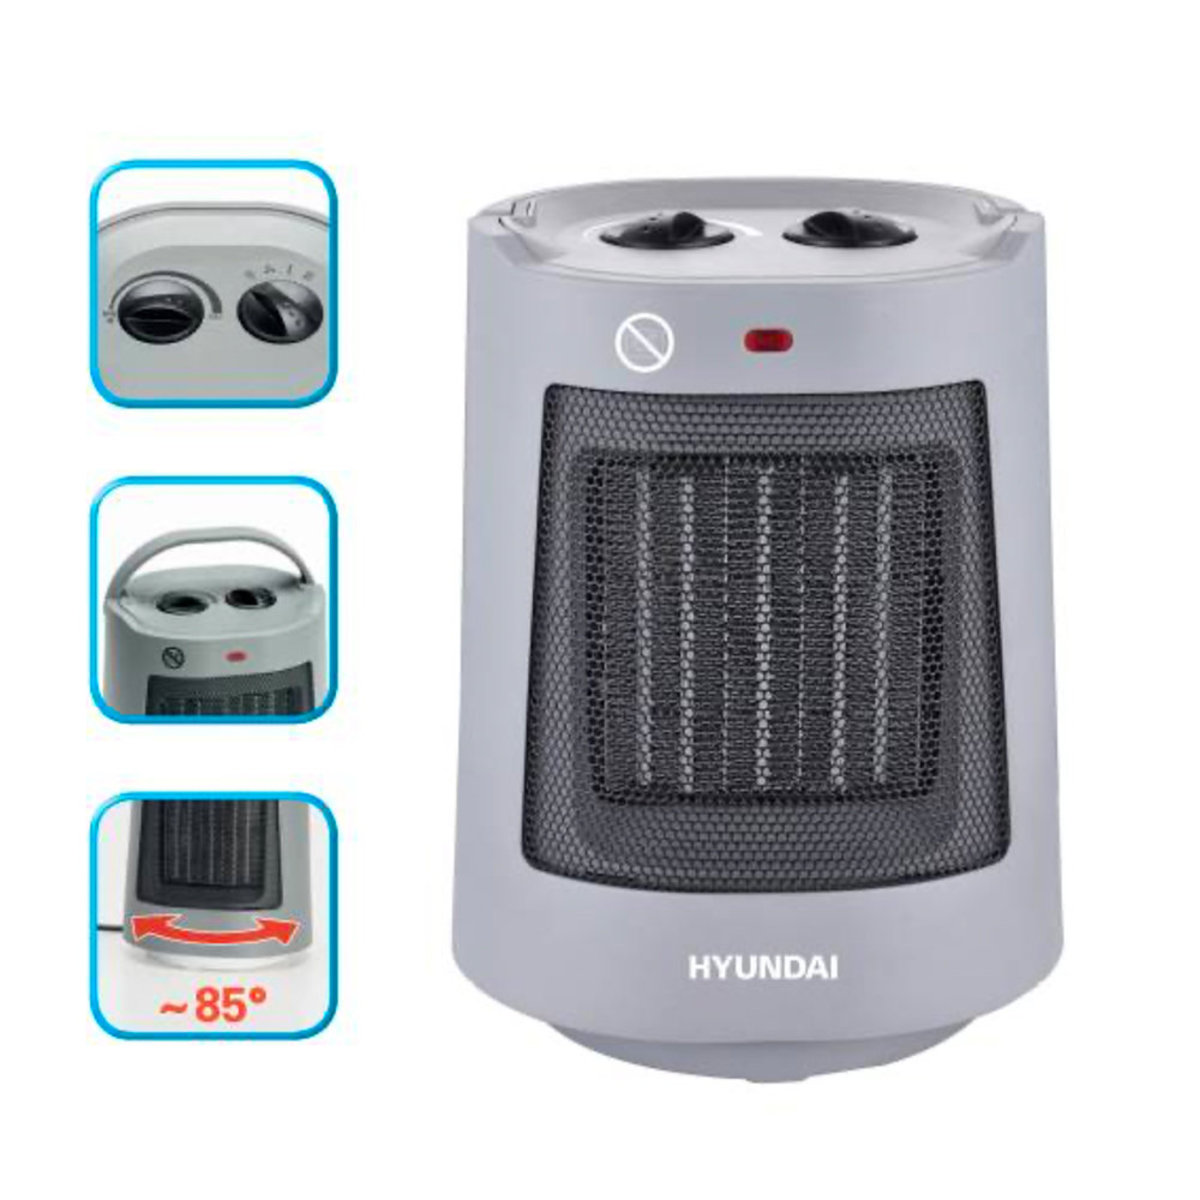 1800W ceramic Heater - HY-20HT